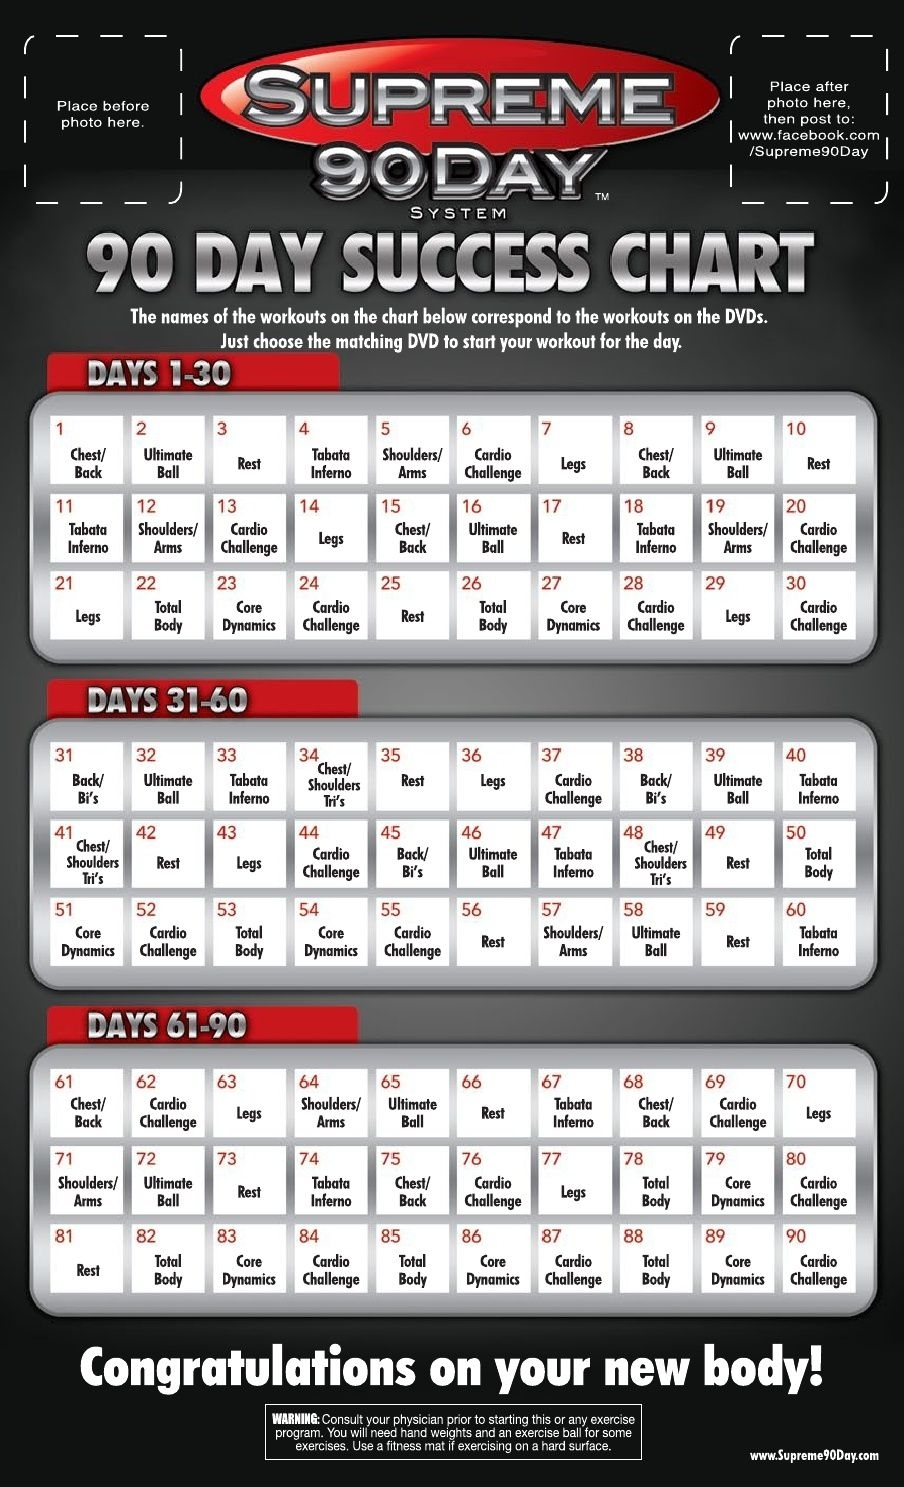 Supreme 90 Day Workout Schedule With Time | 90 Day Workout